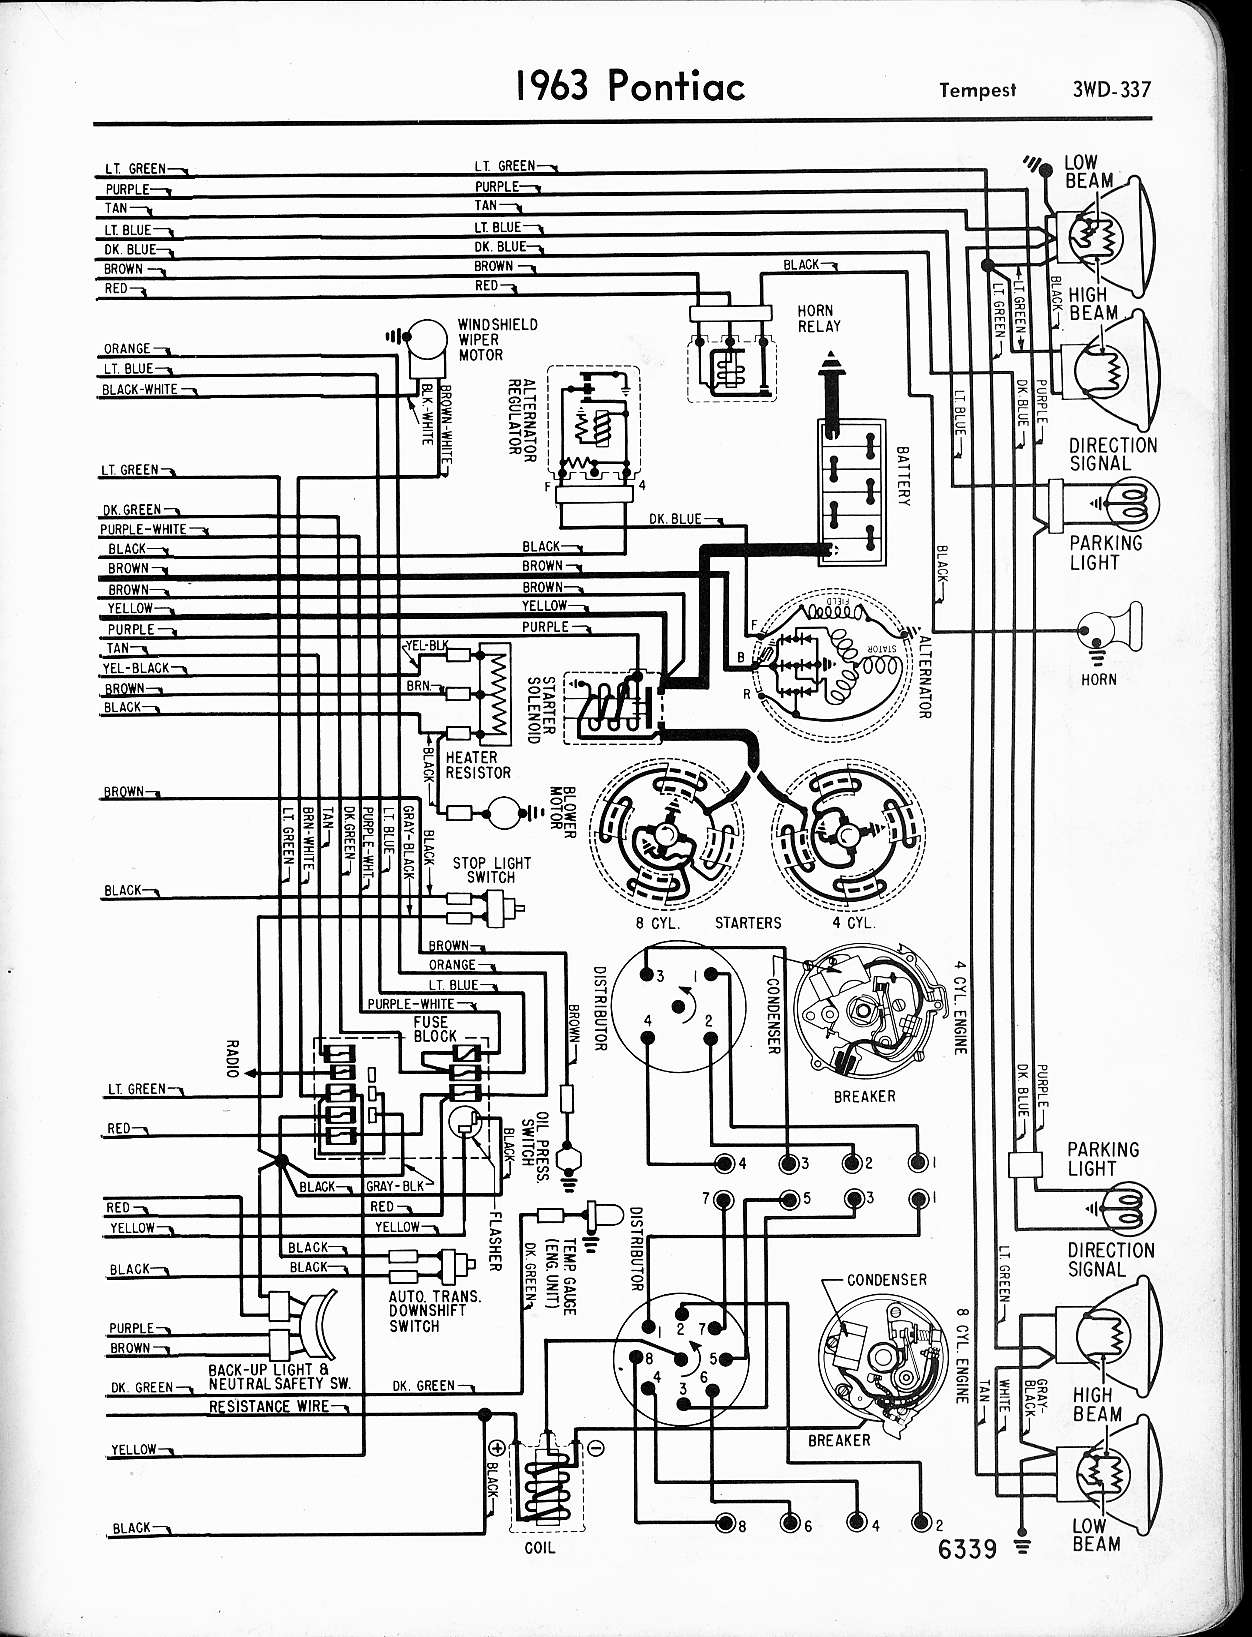 1970 dodge truck wiring diagrams best wiring library 1999 Dodge Dakota Wiring Diagram 1970 dodge truck wiring diagrams